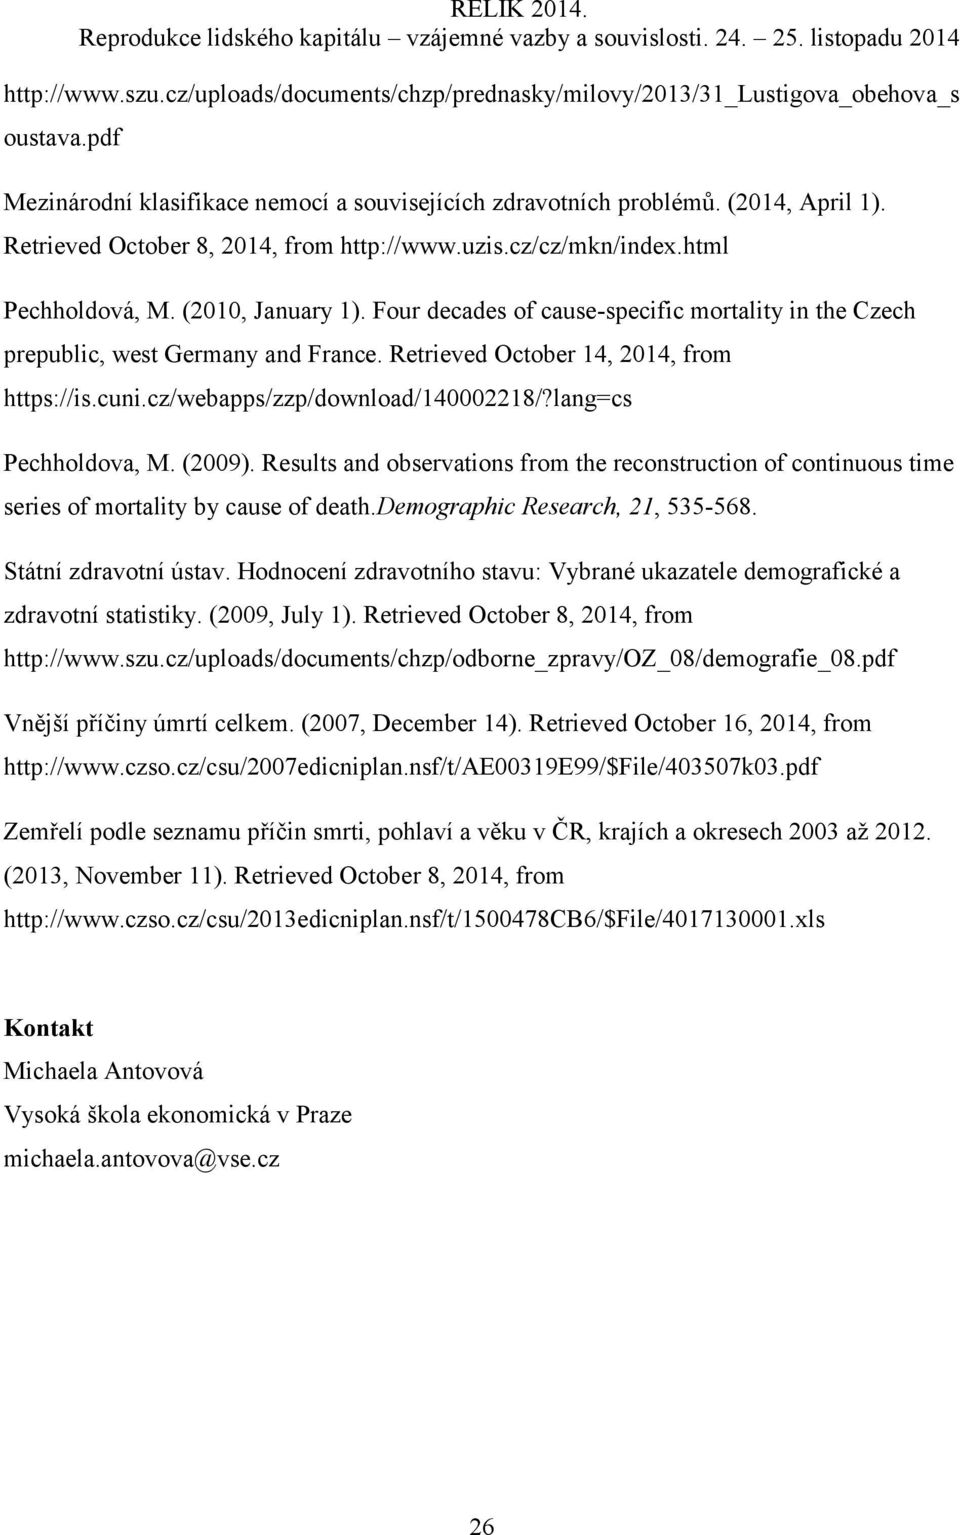 Retrieved October 14, 2014, from https://is.cuni.cz/webapps/zzp/download/140002218/?lang=cs Pechholdova, M. (2009).